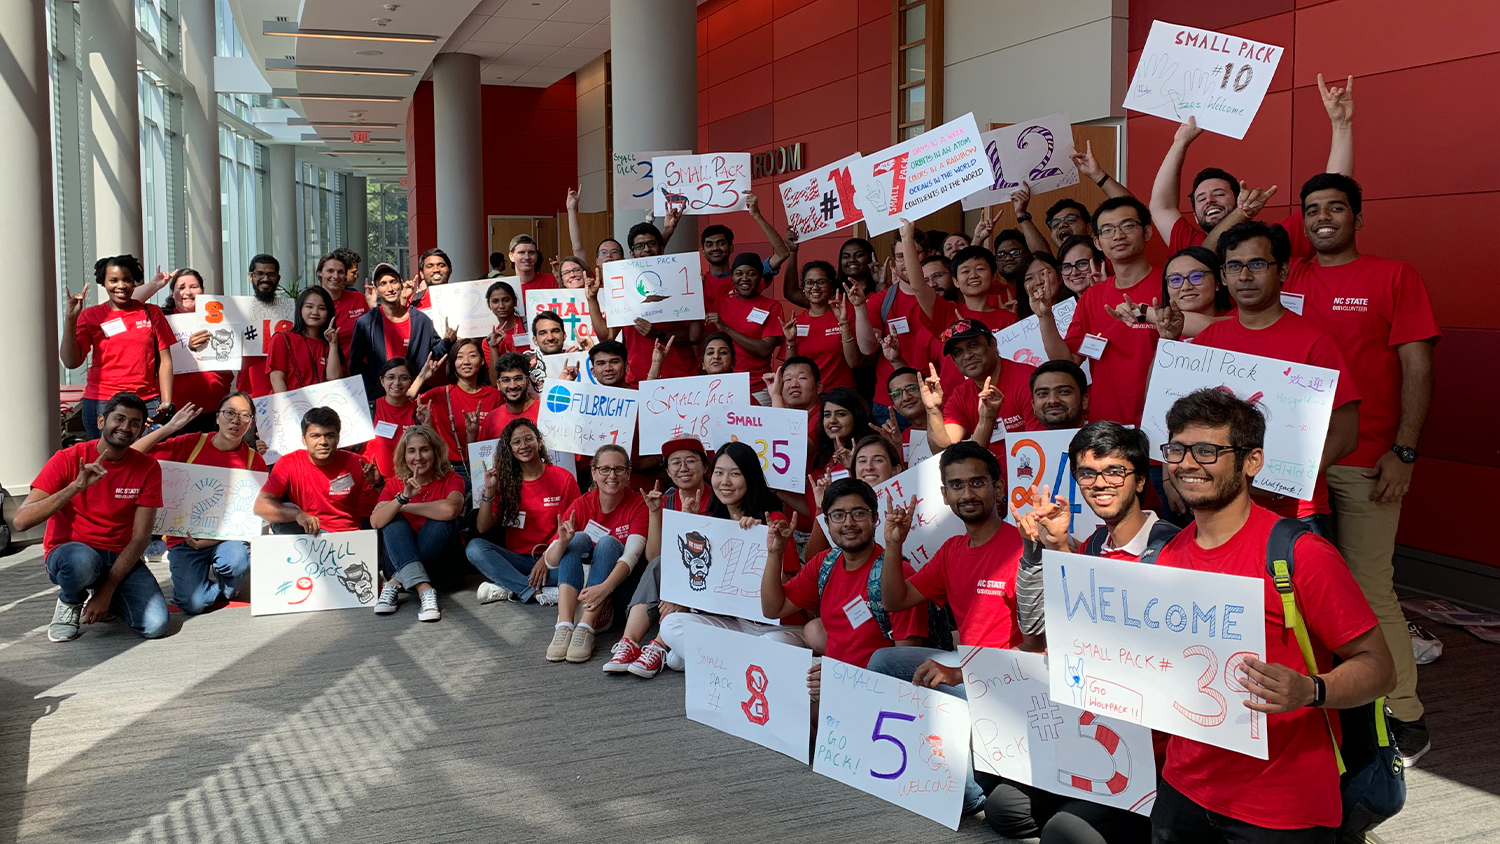 A group of international students volunteering as Small Pack Leaders are posing for a photo while holding up their group signs.